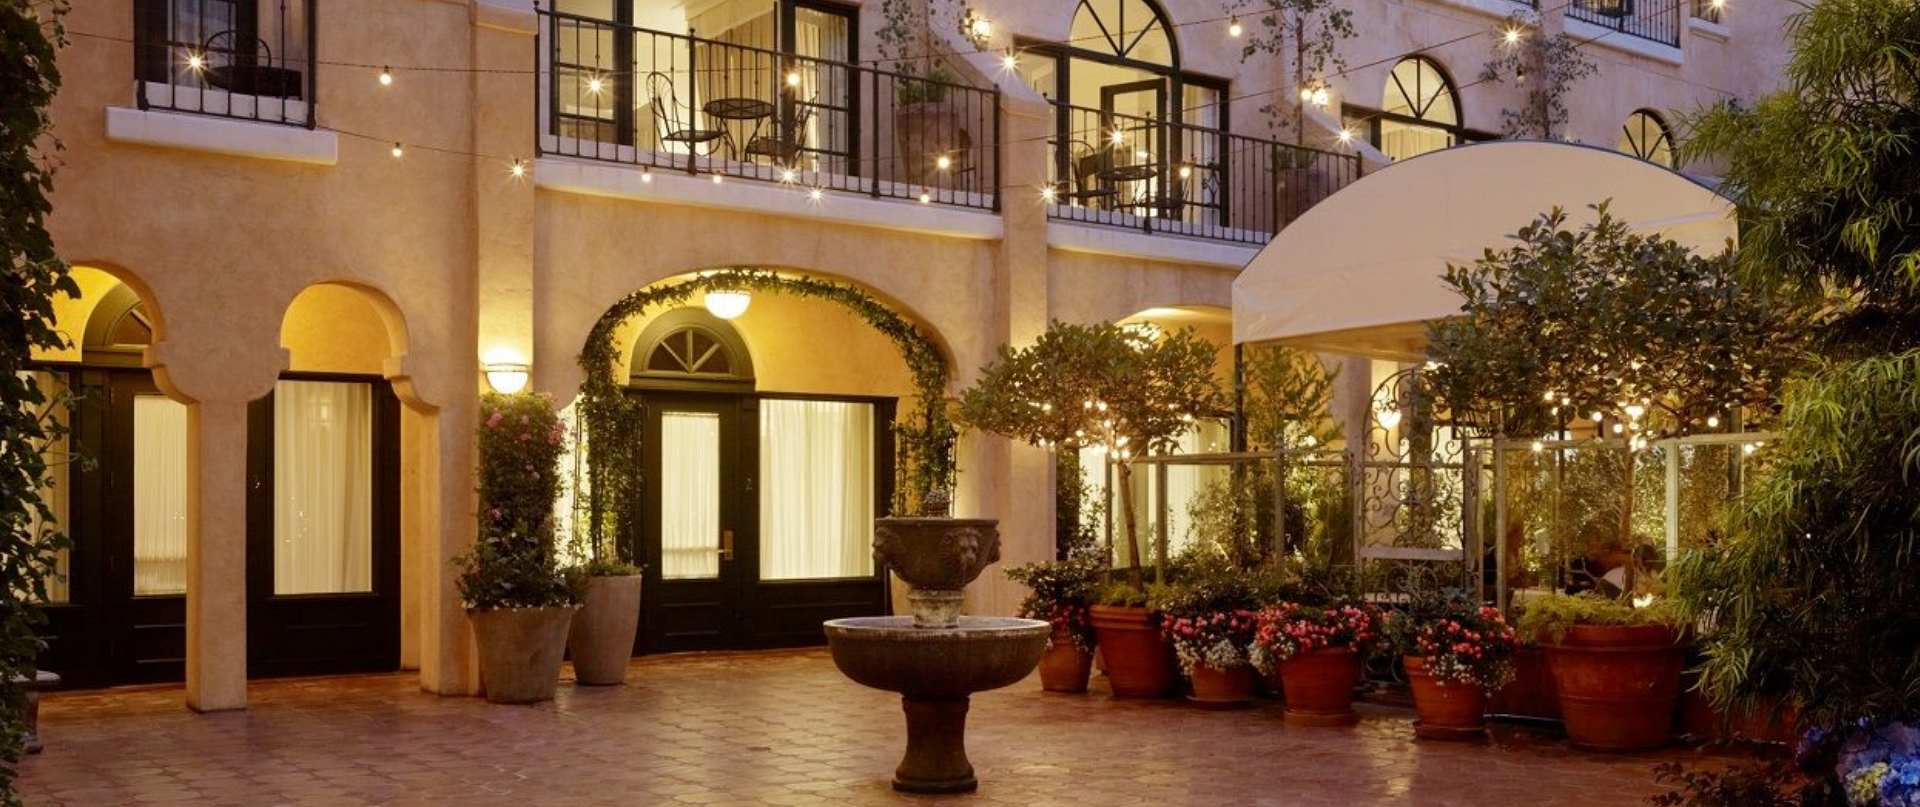 garden court hotel palo alto Absolutiontheplaycom